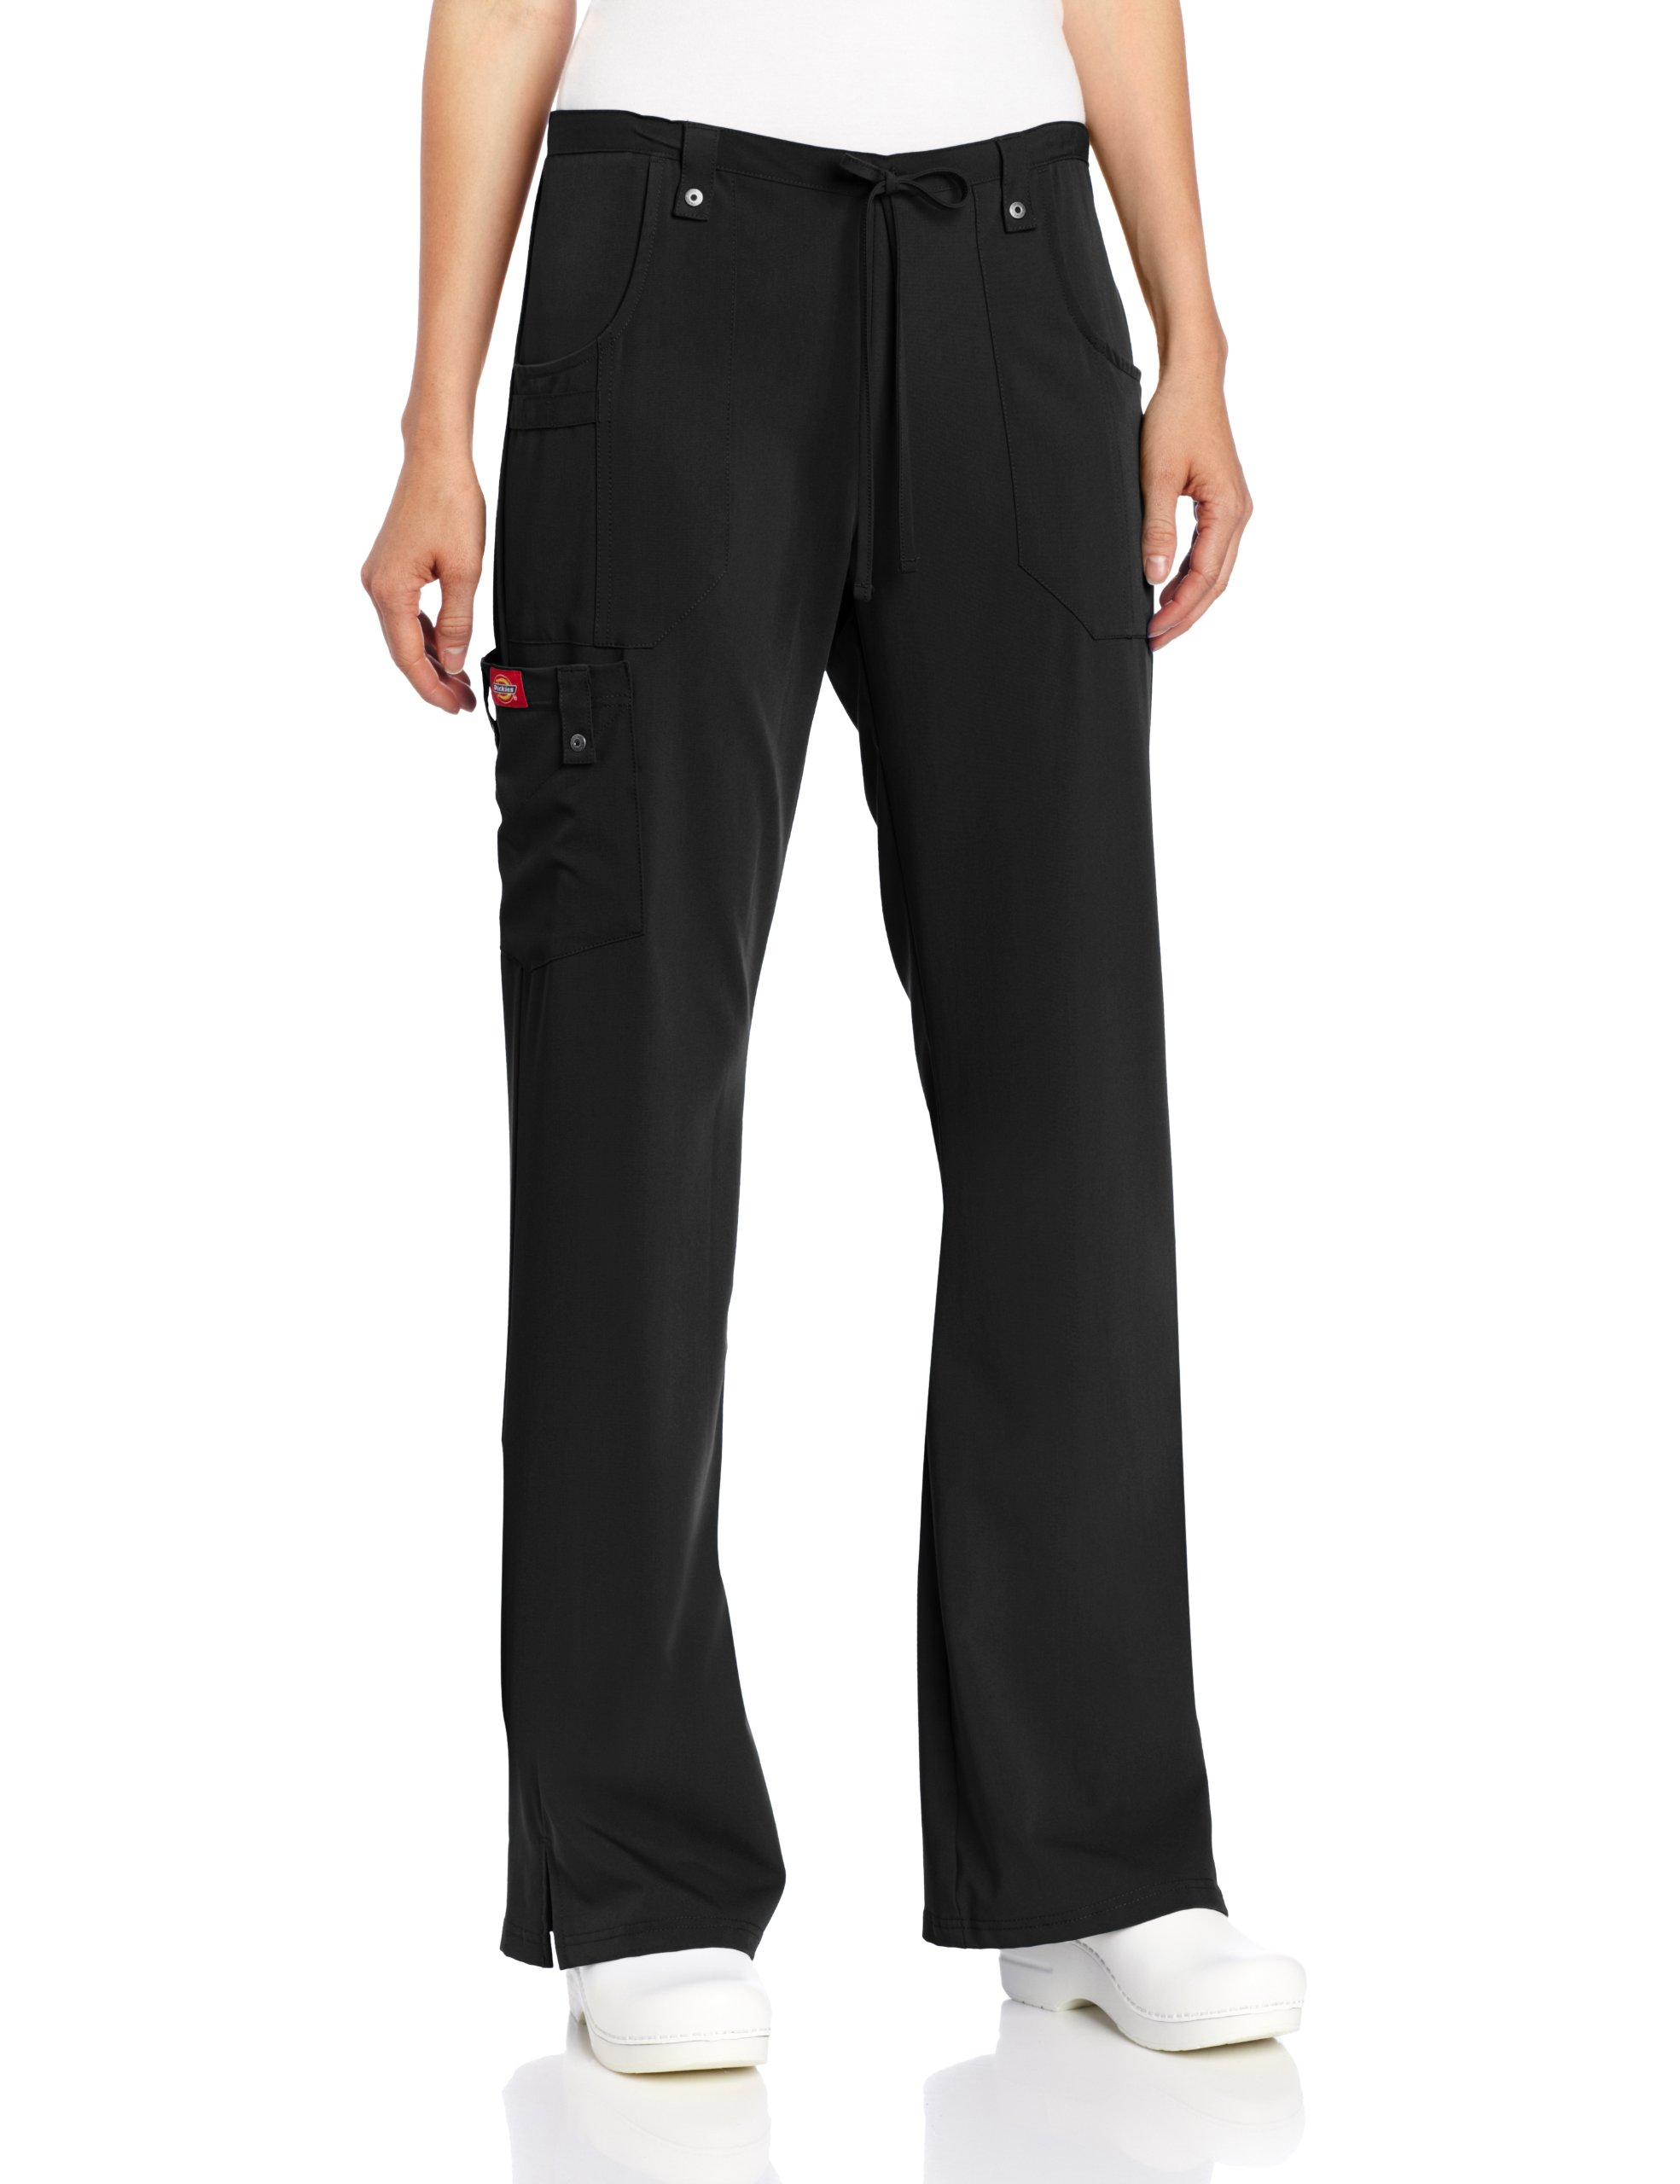 Dickies Women's Xtreme Stretch Fit Drawstring Flare Leg Pant, Black, 4X-Large